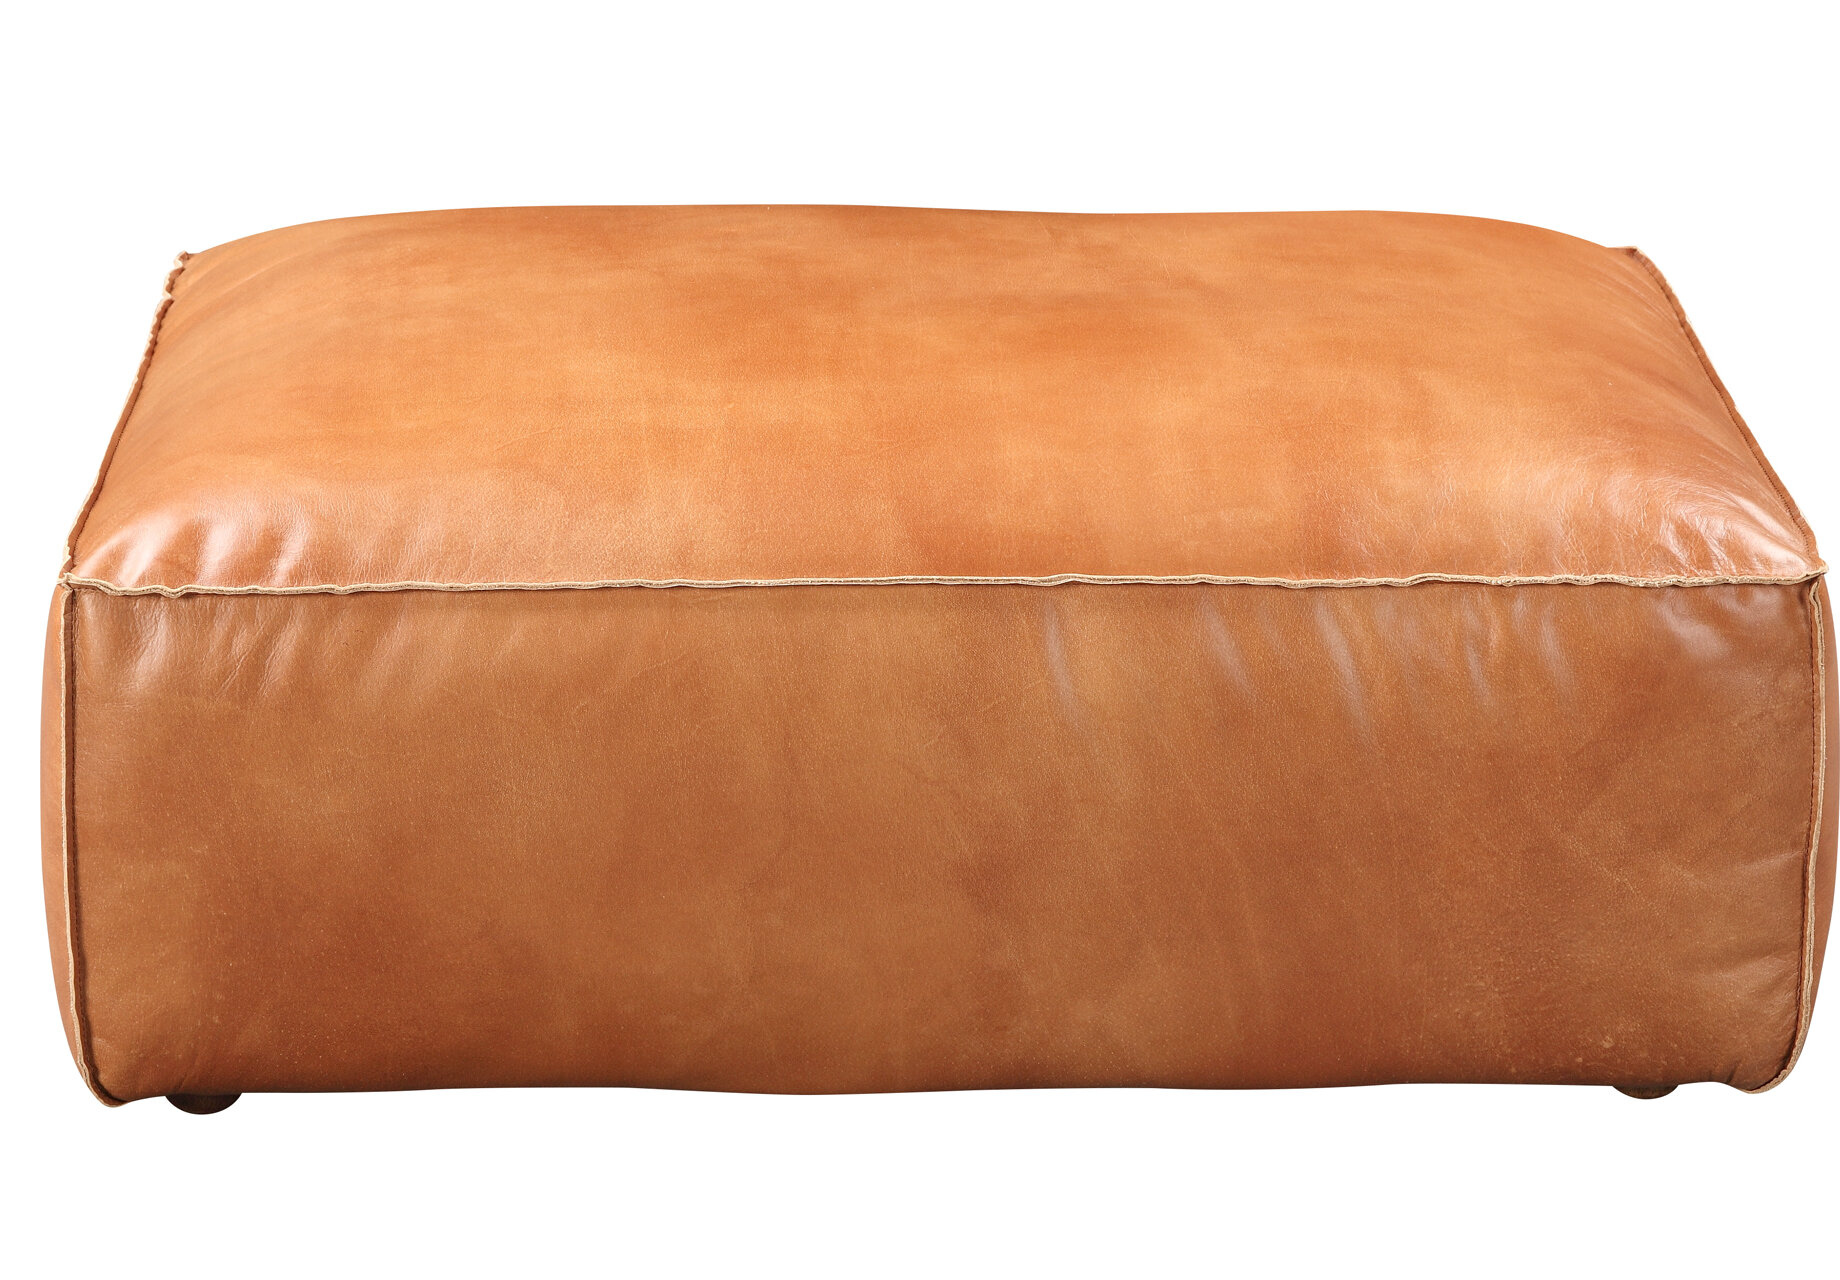 Leather Rectangle Ottomans Poufs You Ll Love In 2021 Wayfair